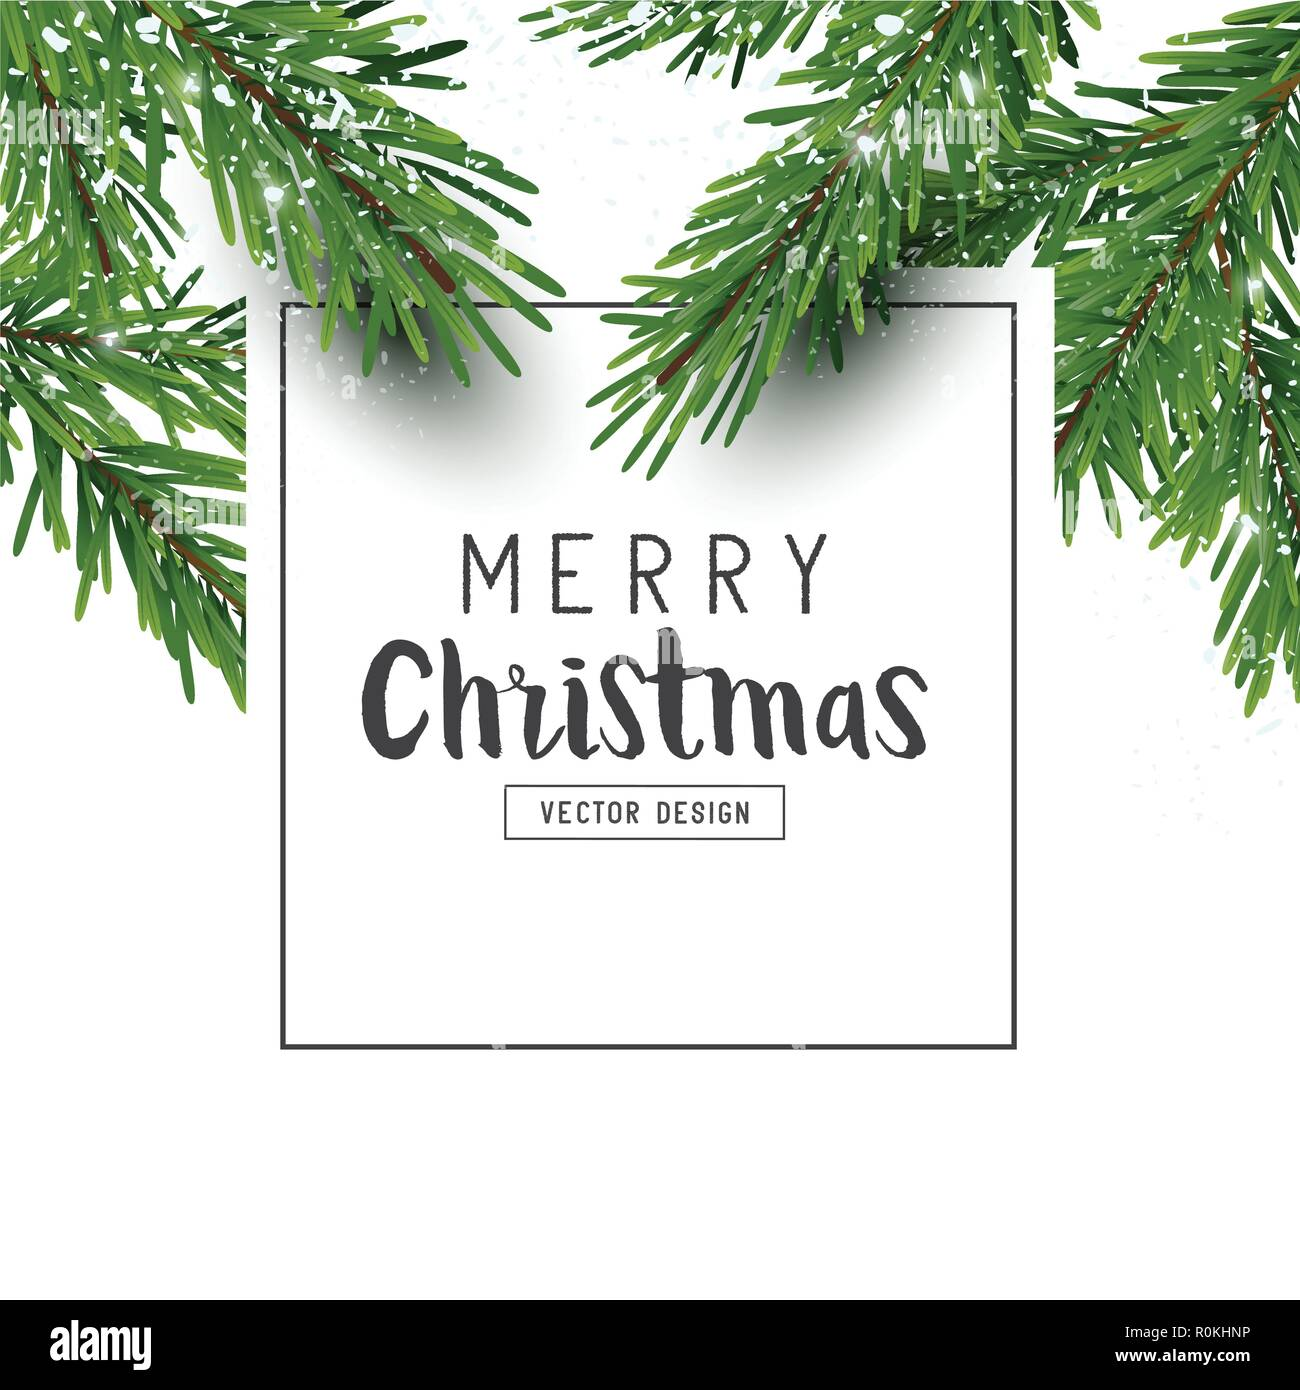 Christmas Branch Vector.Festive Christmas Design Layout Composition With Fir Tree